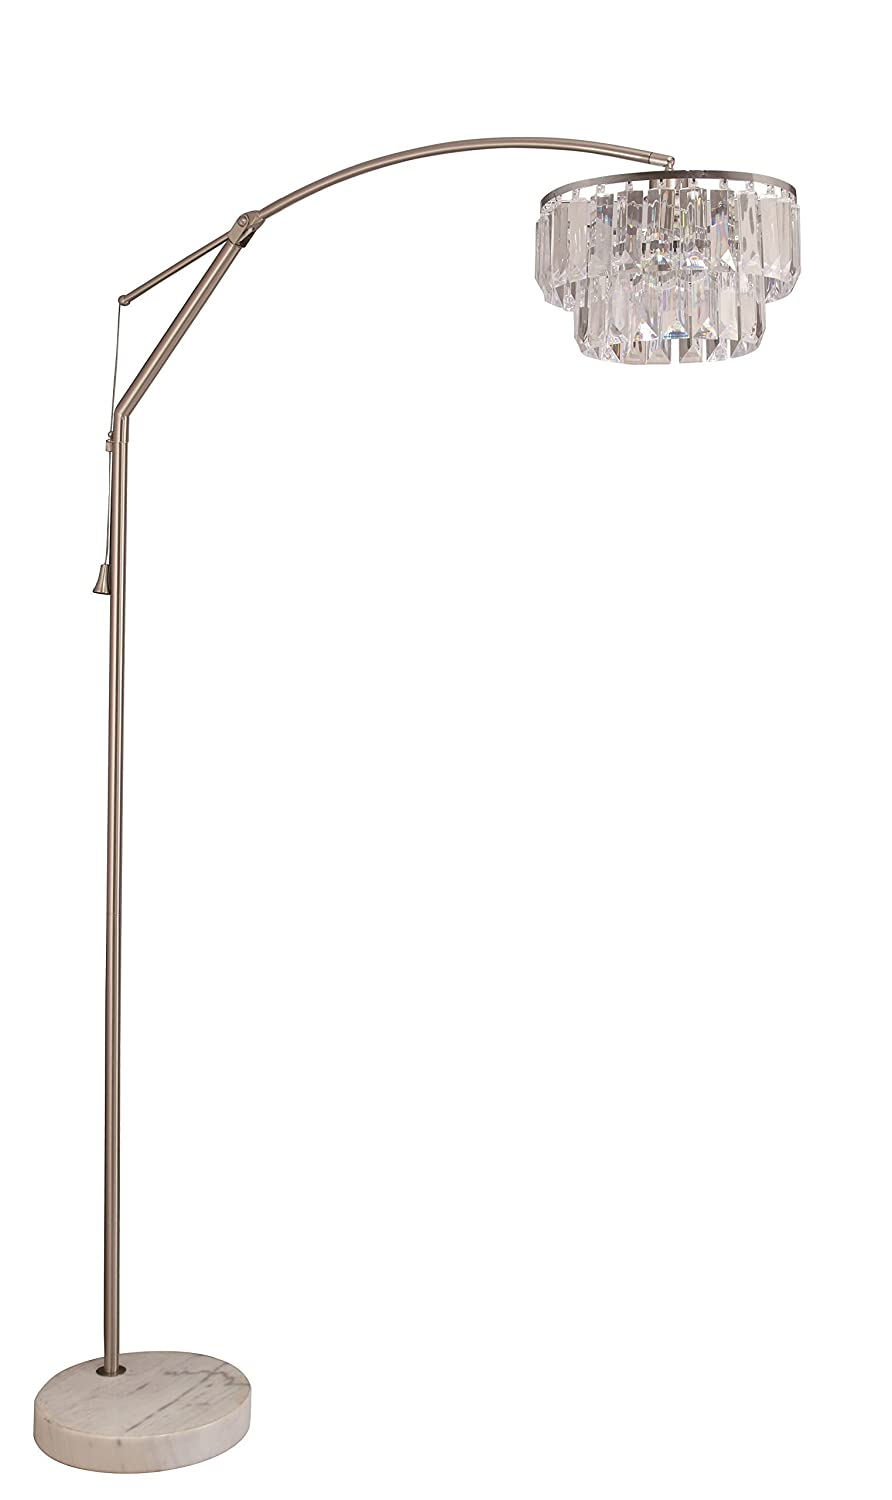 SH Lighting 81 H Steel Adjustable Arching Floor Lamp with Marble Base, 6933CY